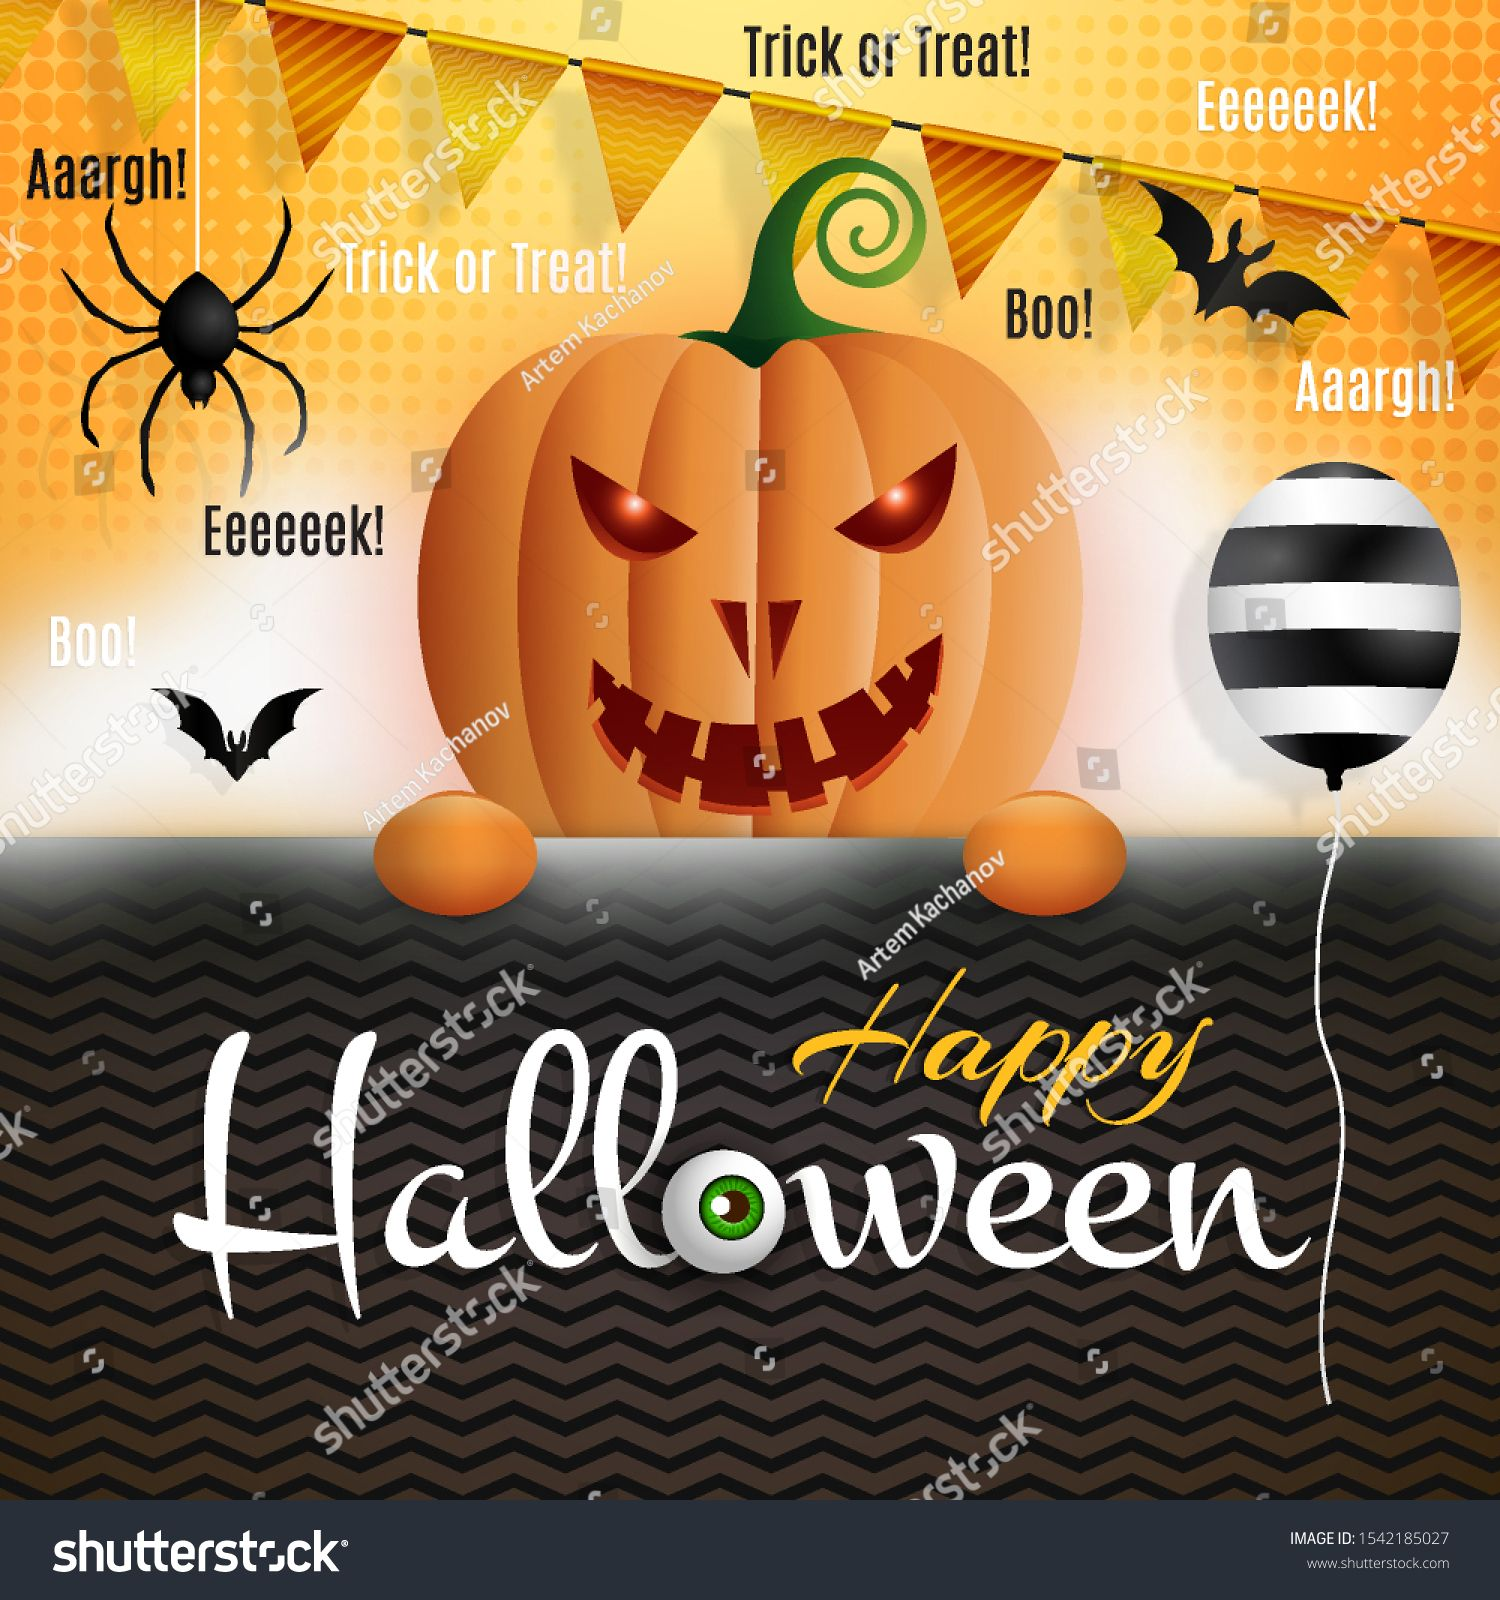 Happy Halloween Colorful template for holiday advertising card flyer poster banner Decorated scary pumpkin character balloon spider bat flags smoke and holiday message